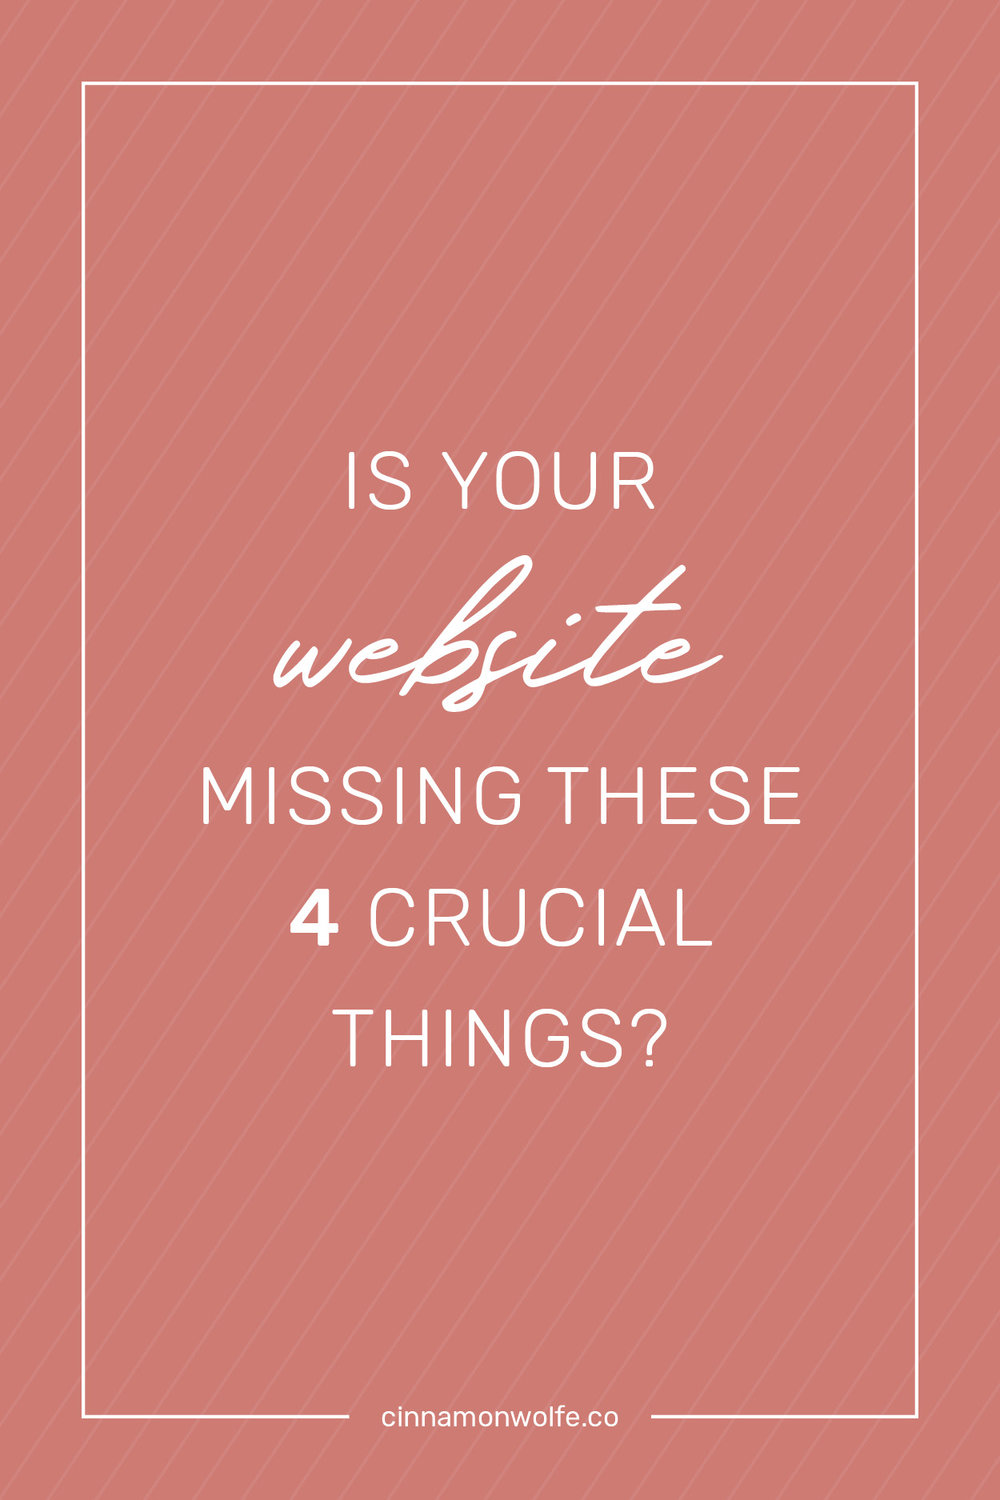 Is your website missing these 4 crucial things